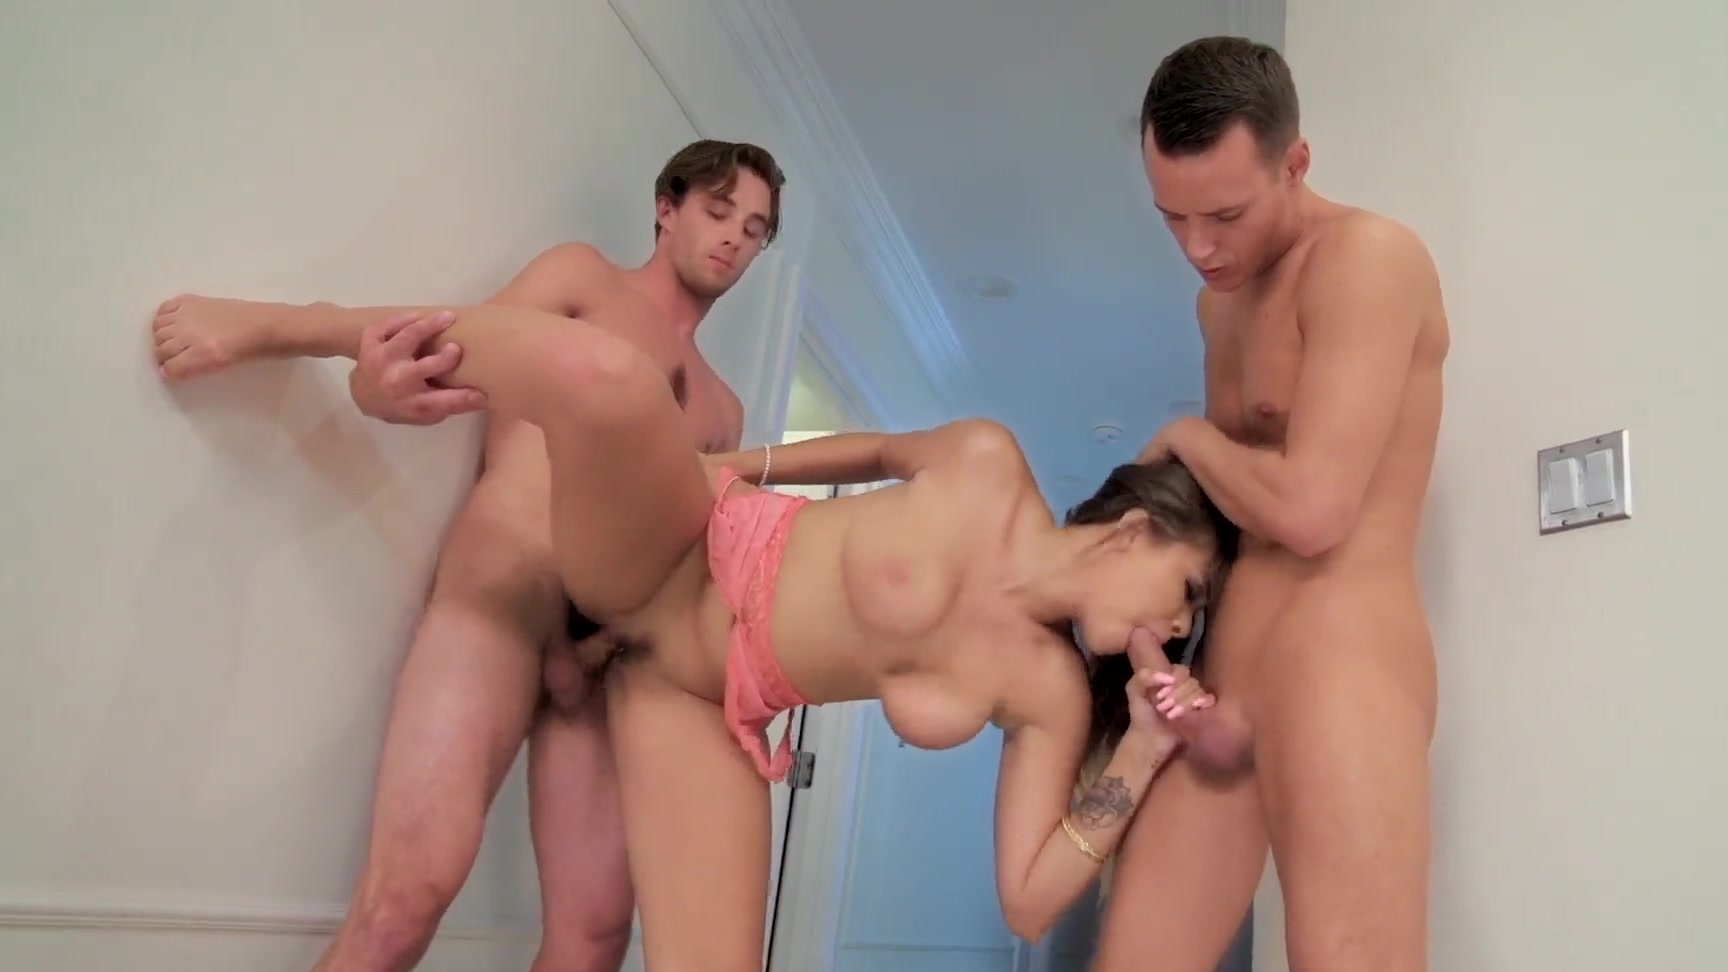 Cassidy banks in hot potato porn videos